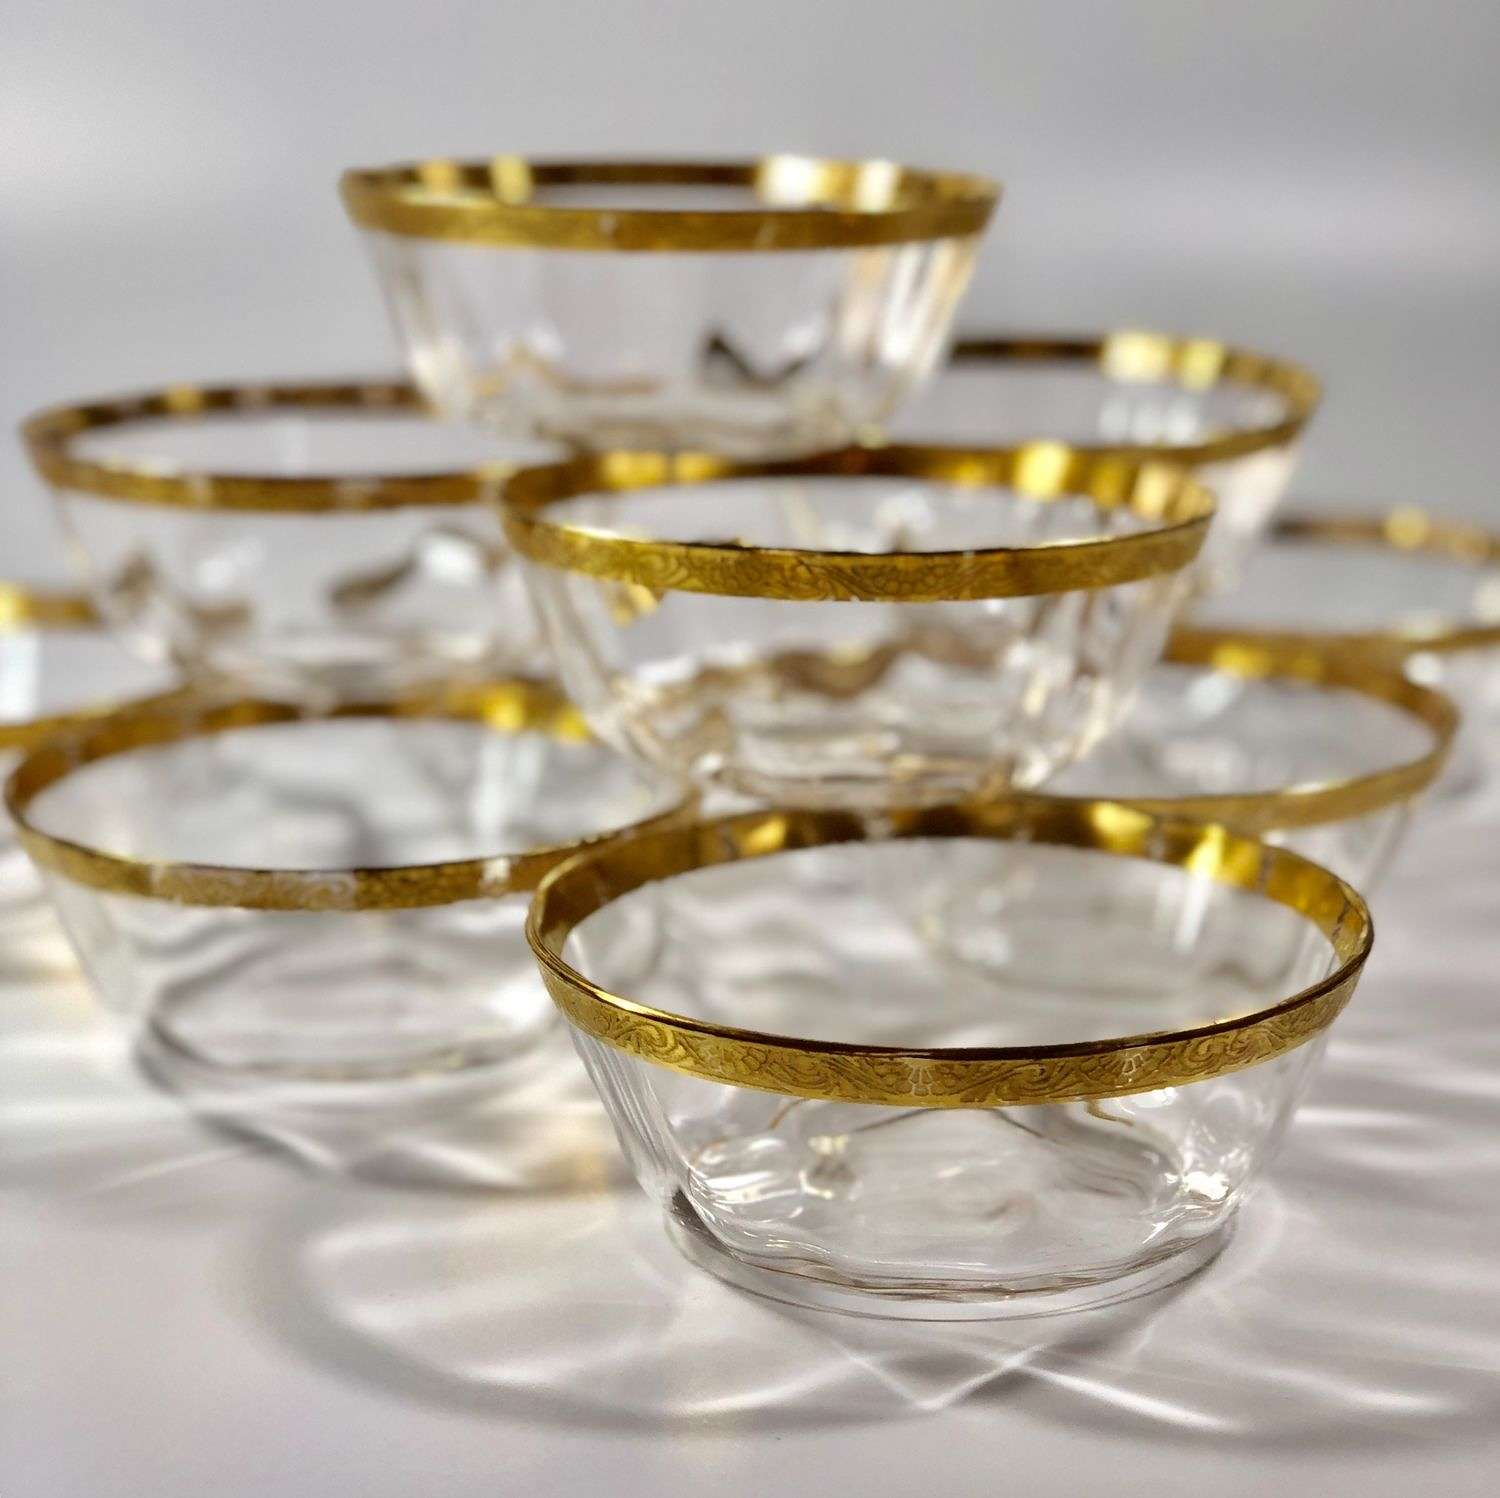 Set of 19th Century gold and optic glass bowls